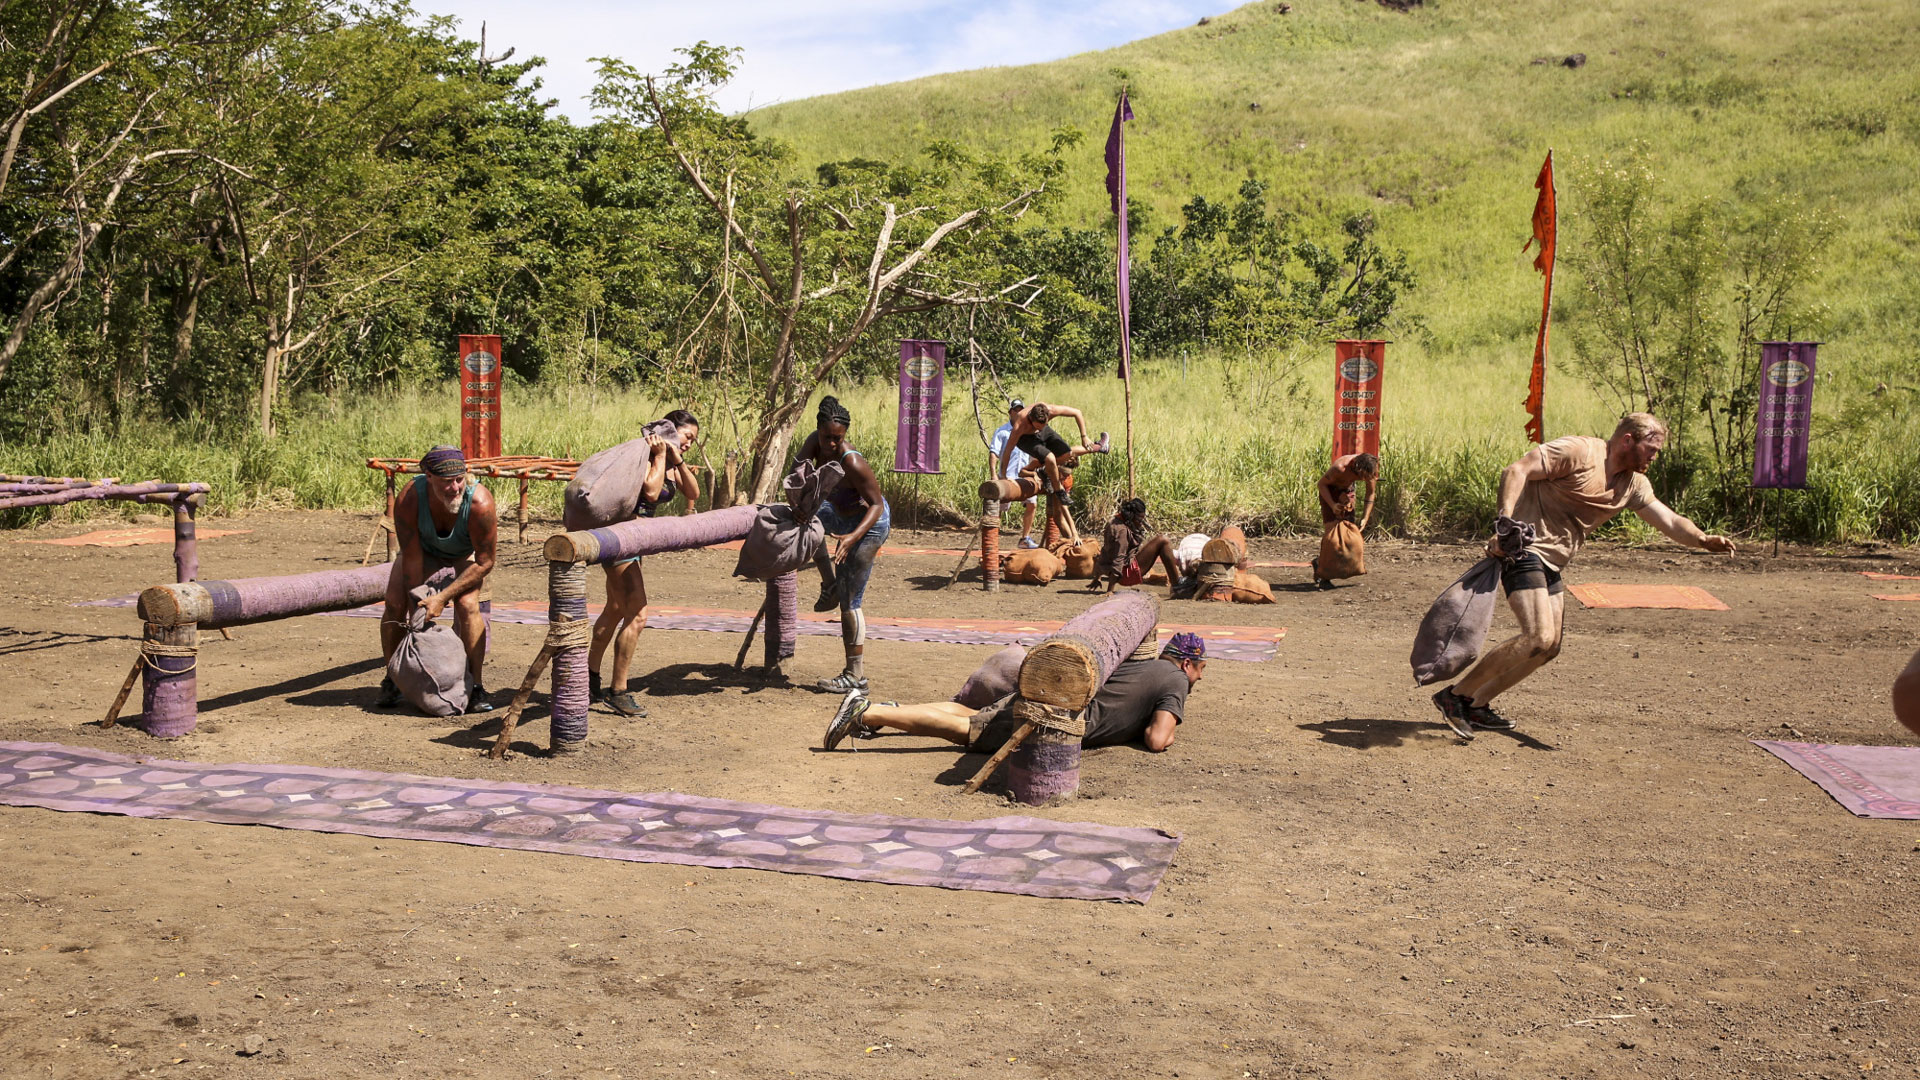 After host Jeff Probst explains the challenge, the tribes take off.